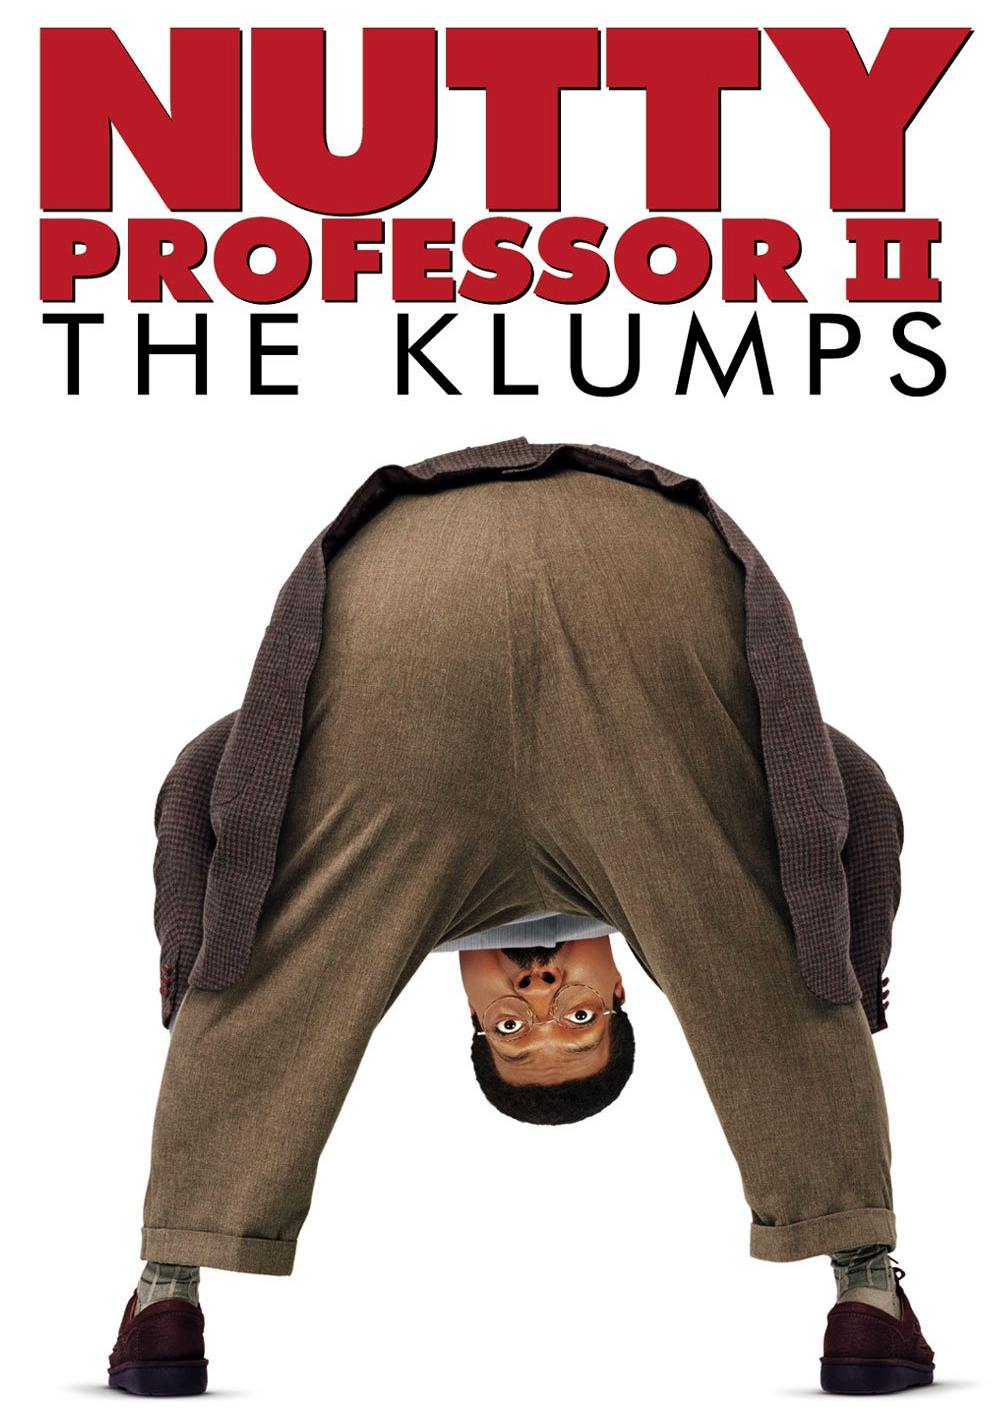 the-nutty-professor-ii-the-klumps-56dc76e281a0e.jpg